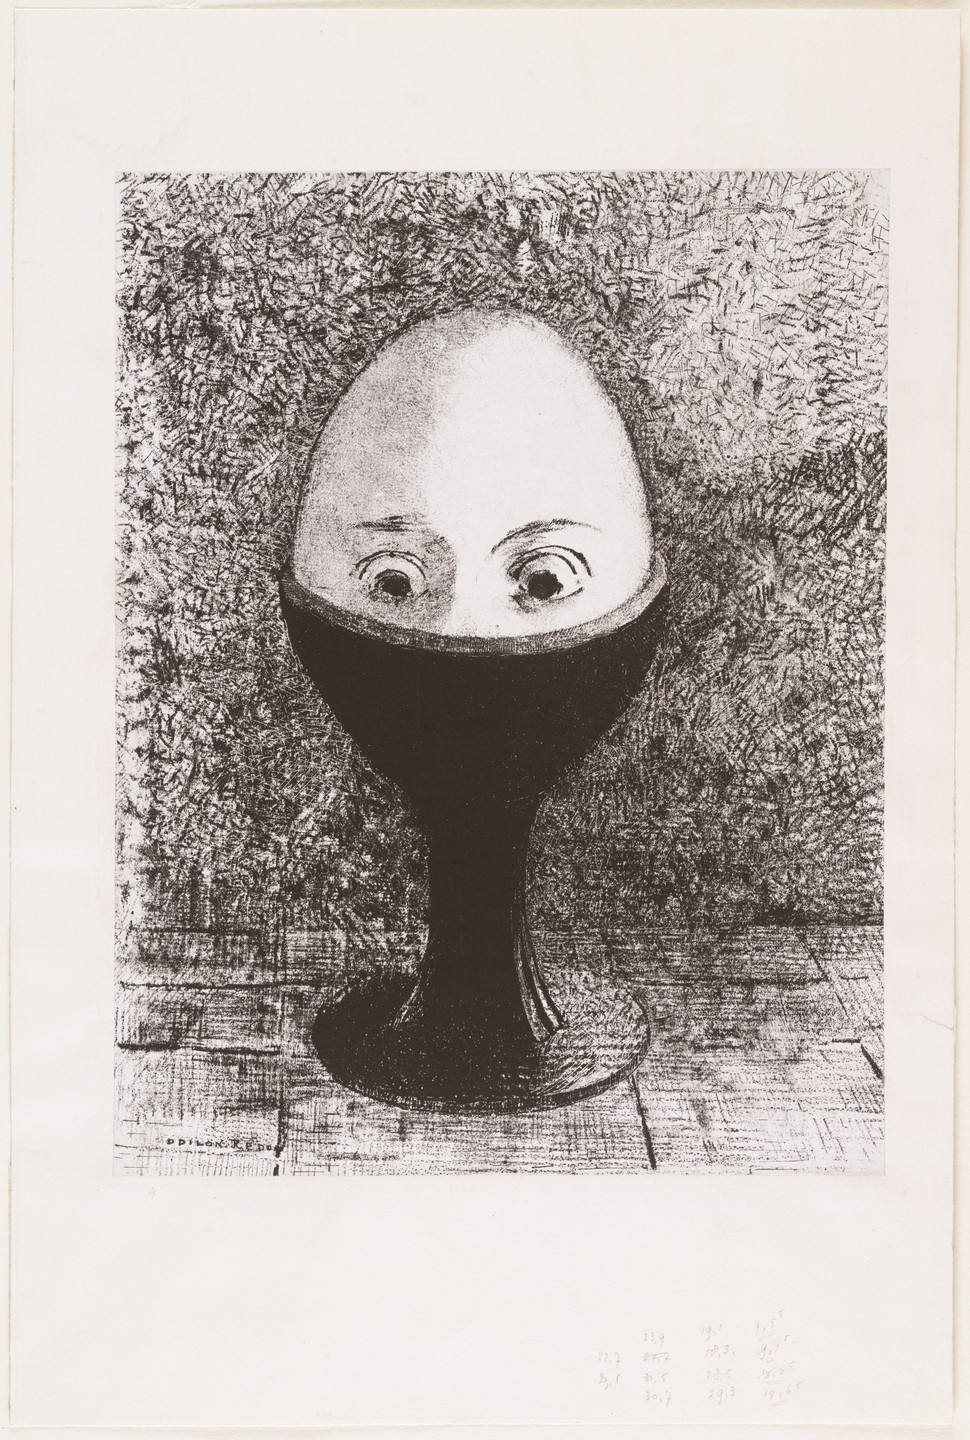 Odilon Redon. The Egg (L'Œuf). 1885